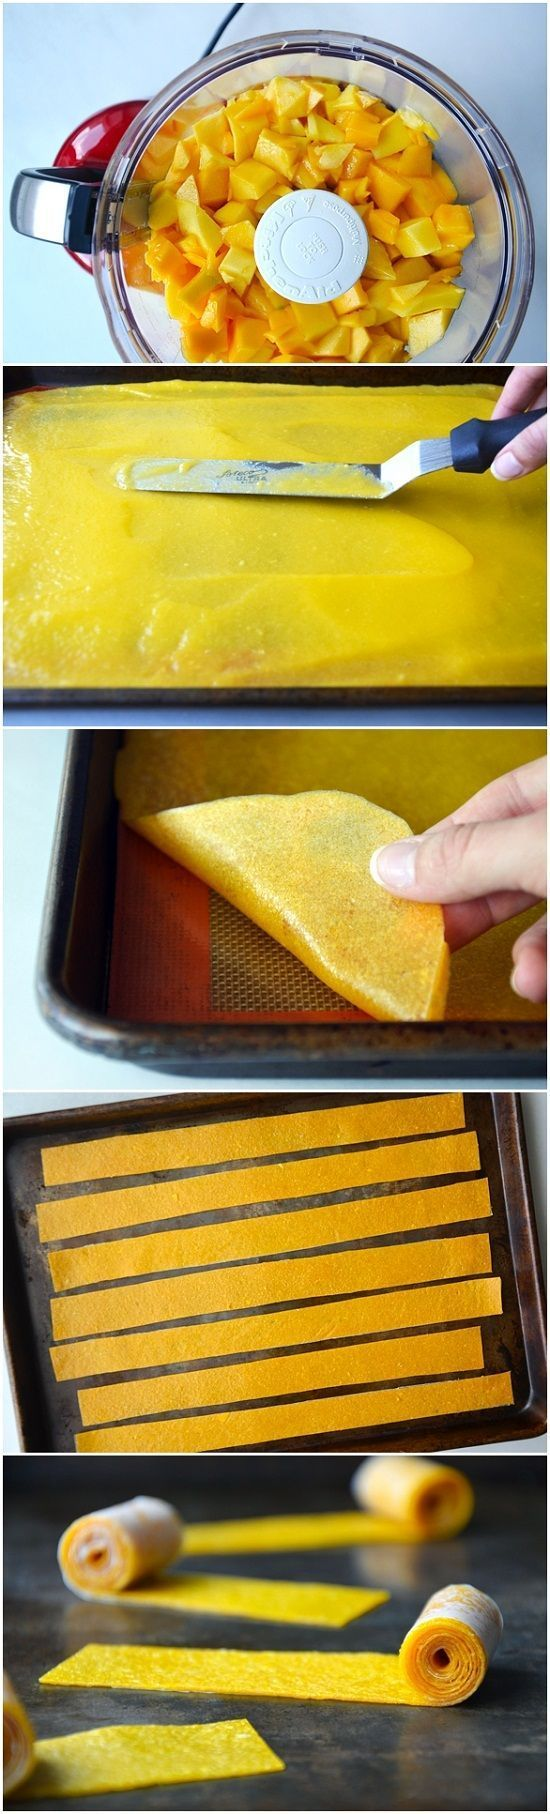 Easy Homemade Mango Fruit Roll-Ups (One ingredient!) #recipe #healthy